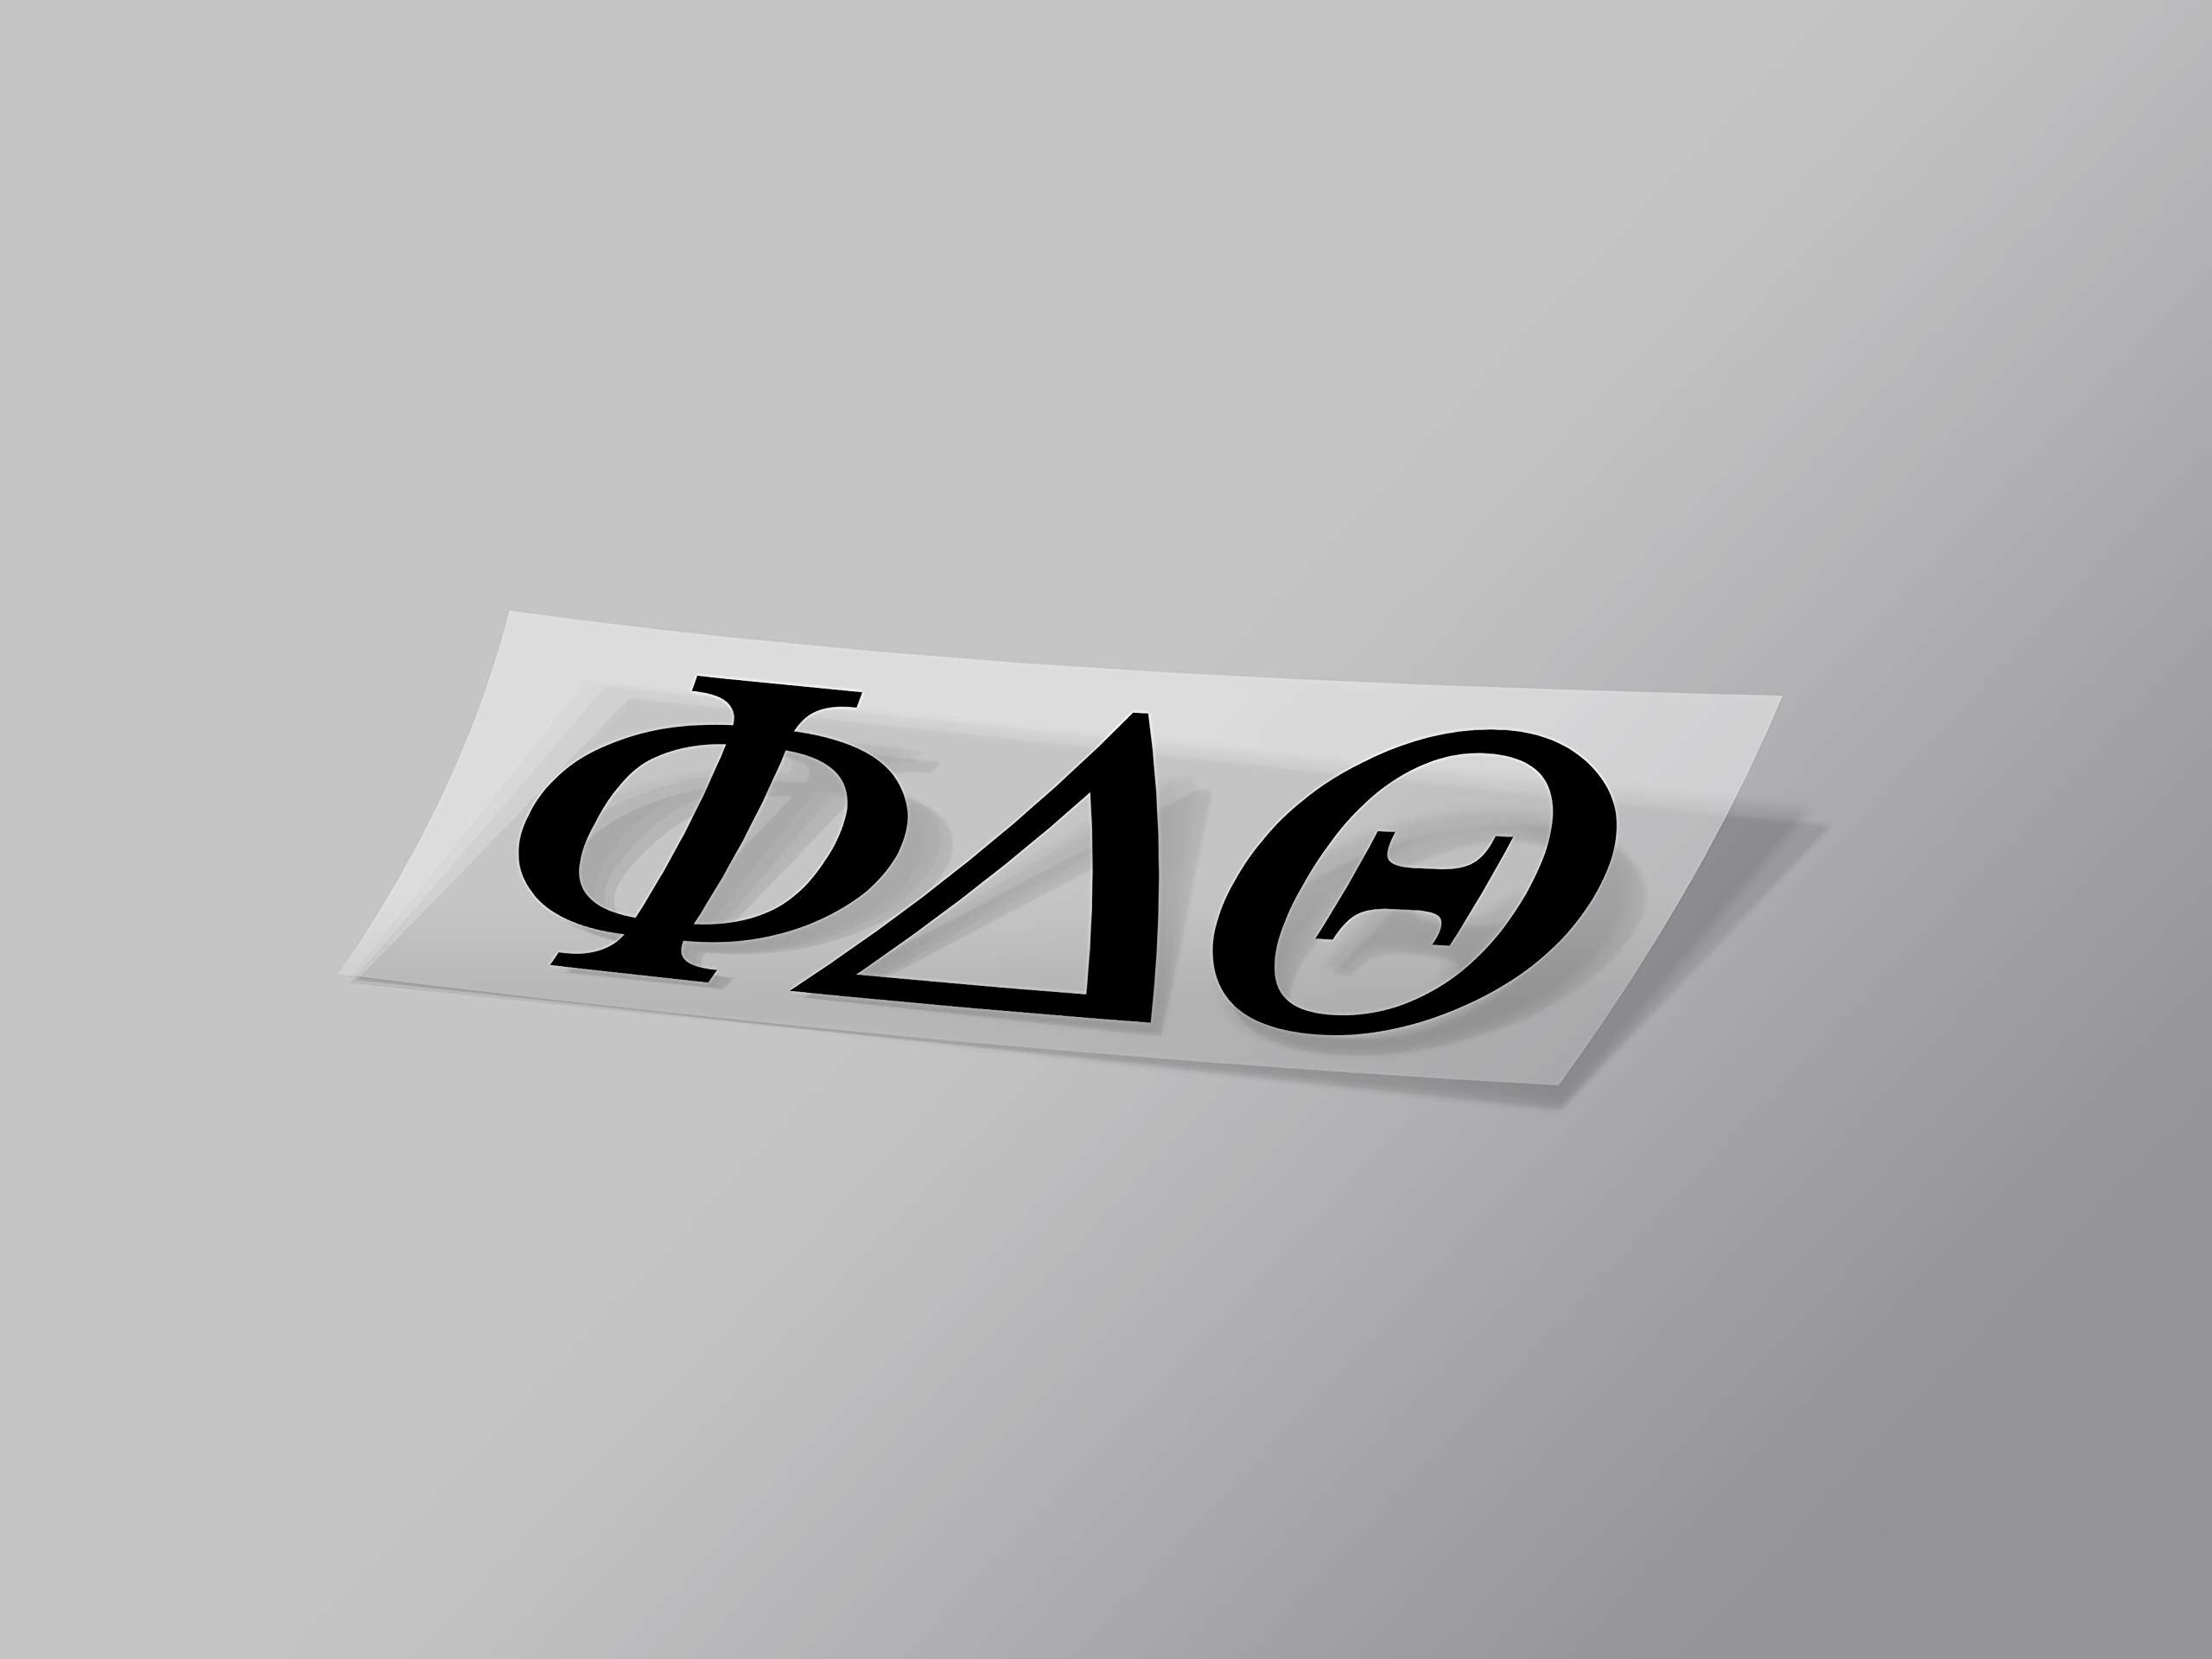 "Phi Delta Theta Sticker Greek Sorority Decal for Car, Laptop, Windows, Officially Licensed Product, Monogram Design 2.5"" Tall - Black"